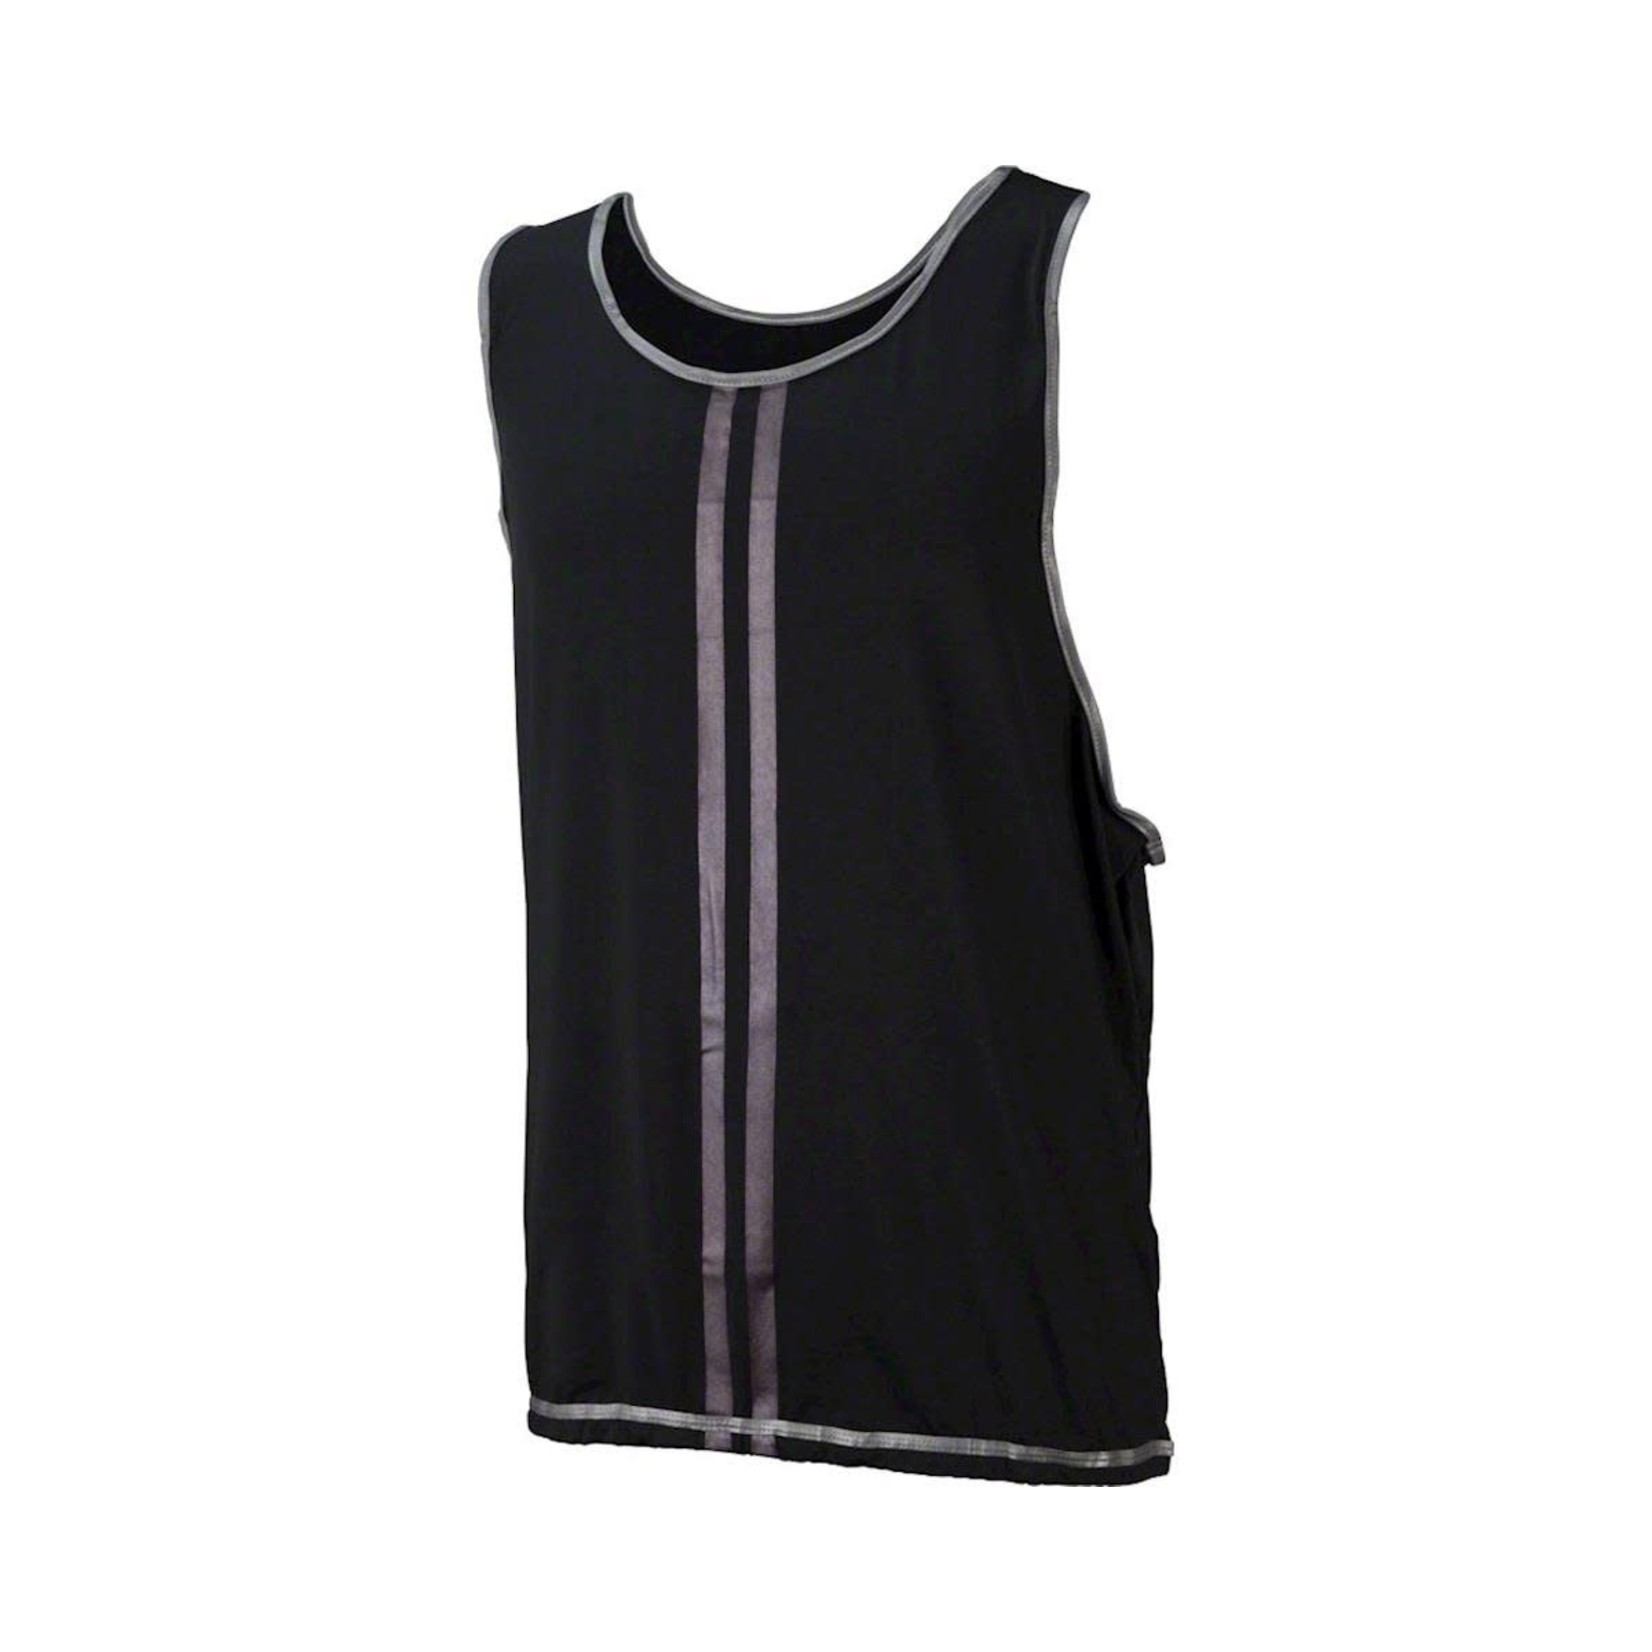 CycleAware Hi-Vis Reflect+ Unisex Vest